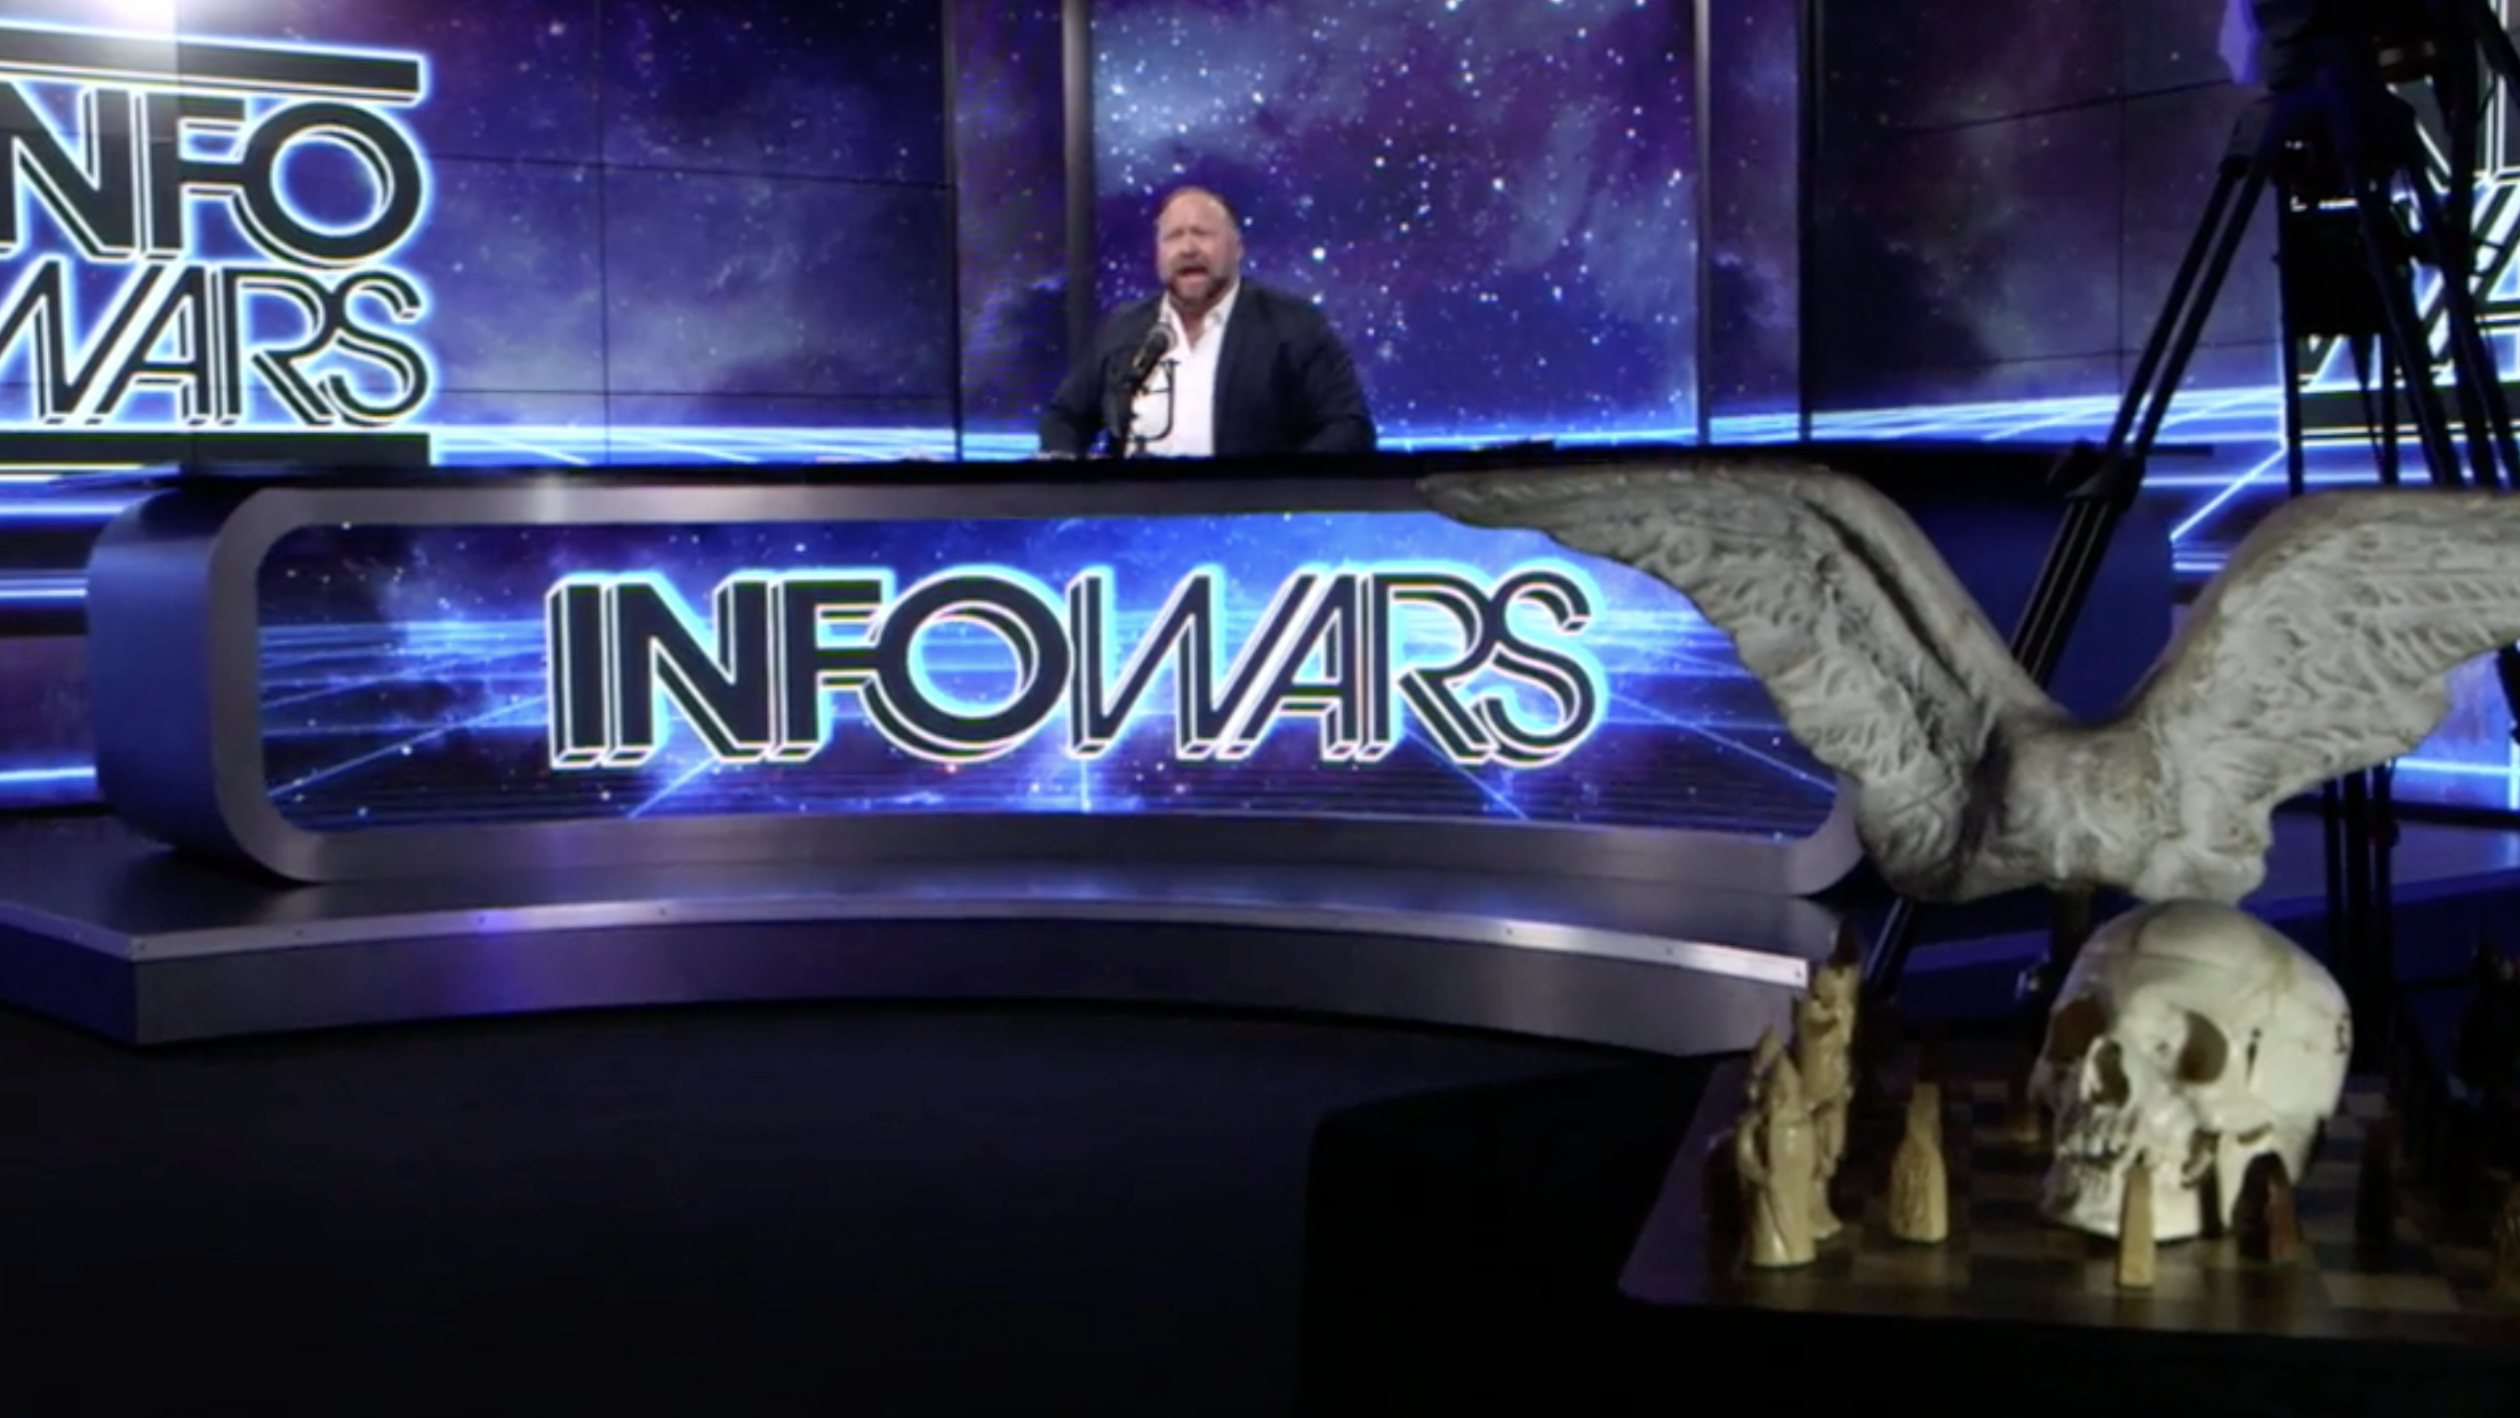 Alex Jones Infowars Studio The Resistance Video EXZM Zack Mount January 17th 2021